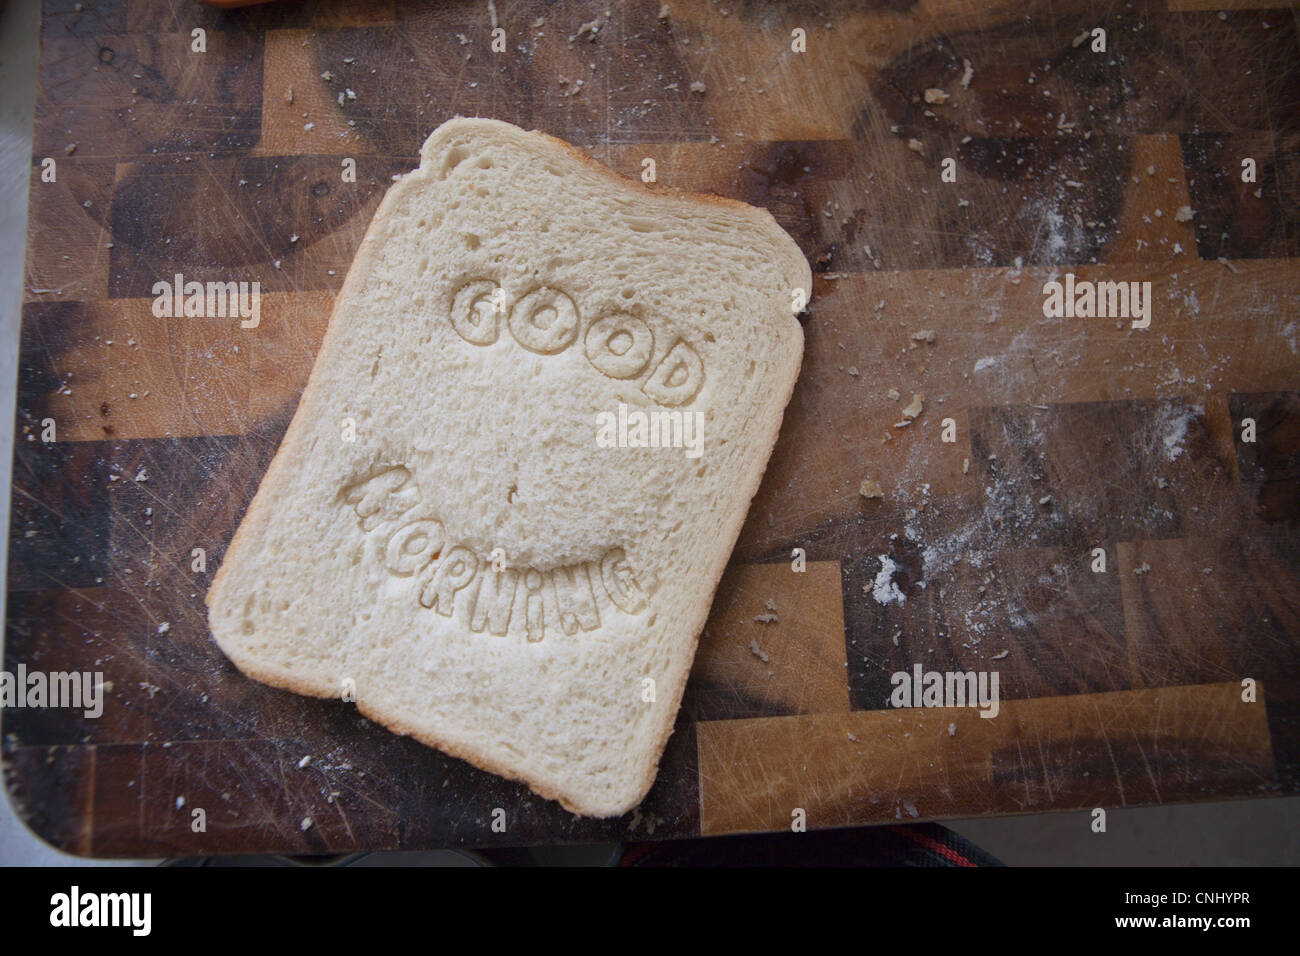 Good morning stamped into bread - Stock Image